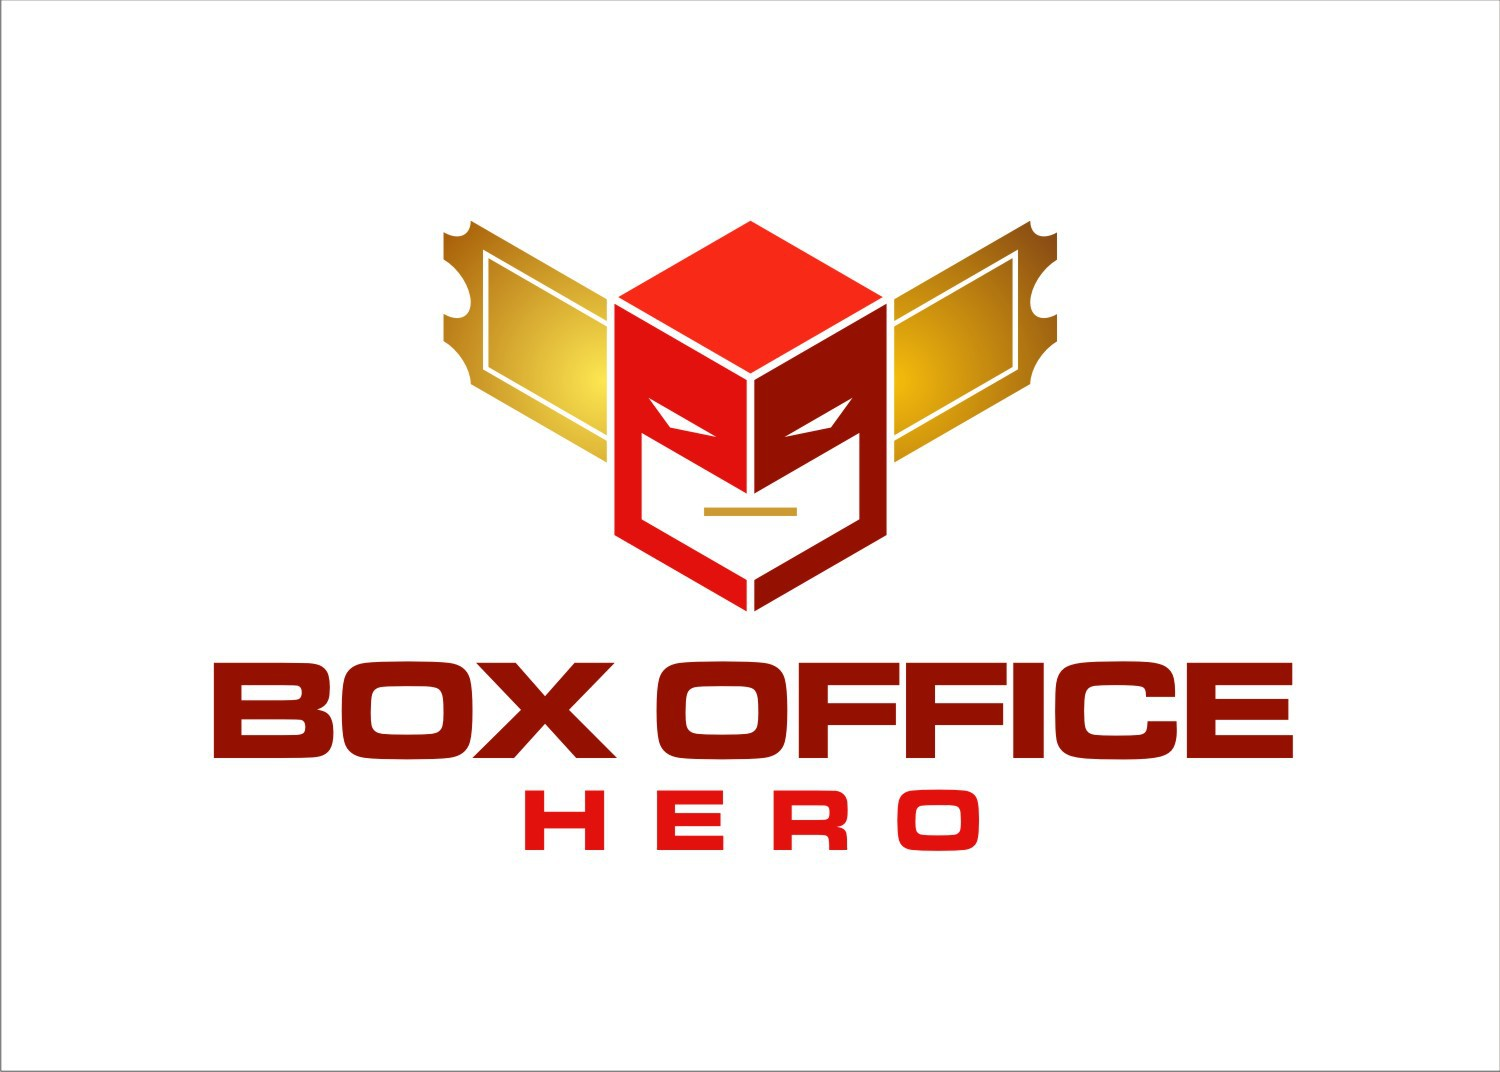 BoxOfficeHero - Create a Super Heroic logo for a new event information site!